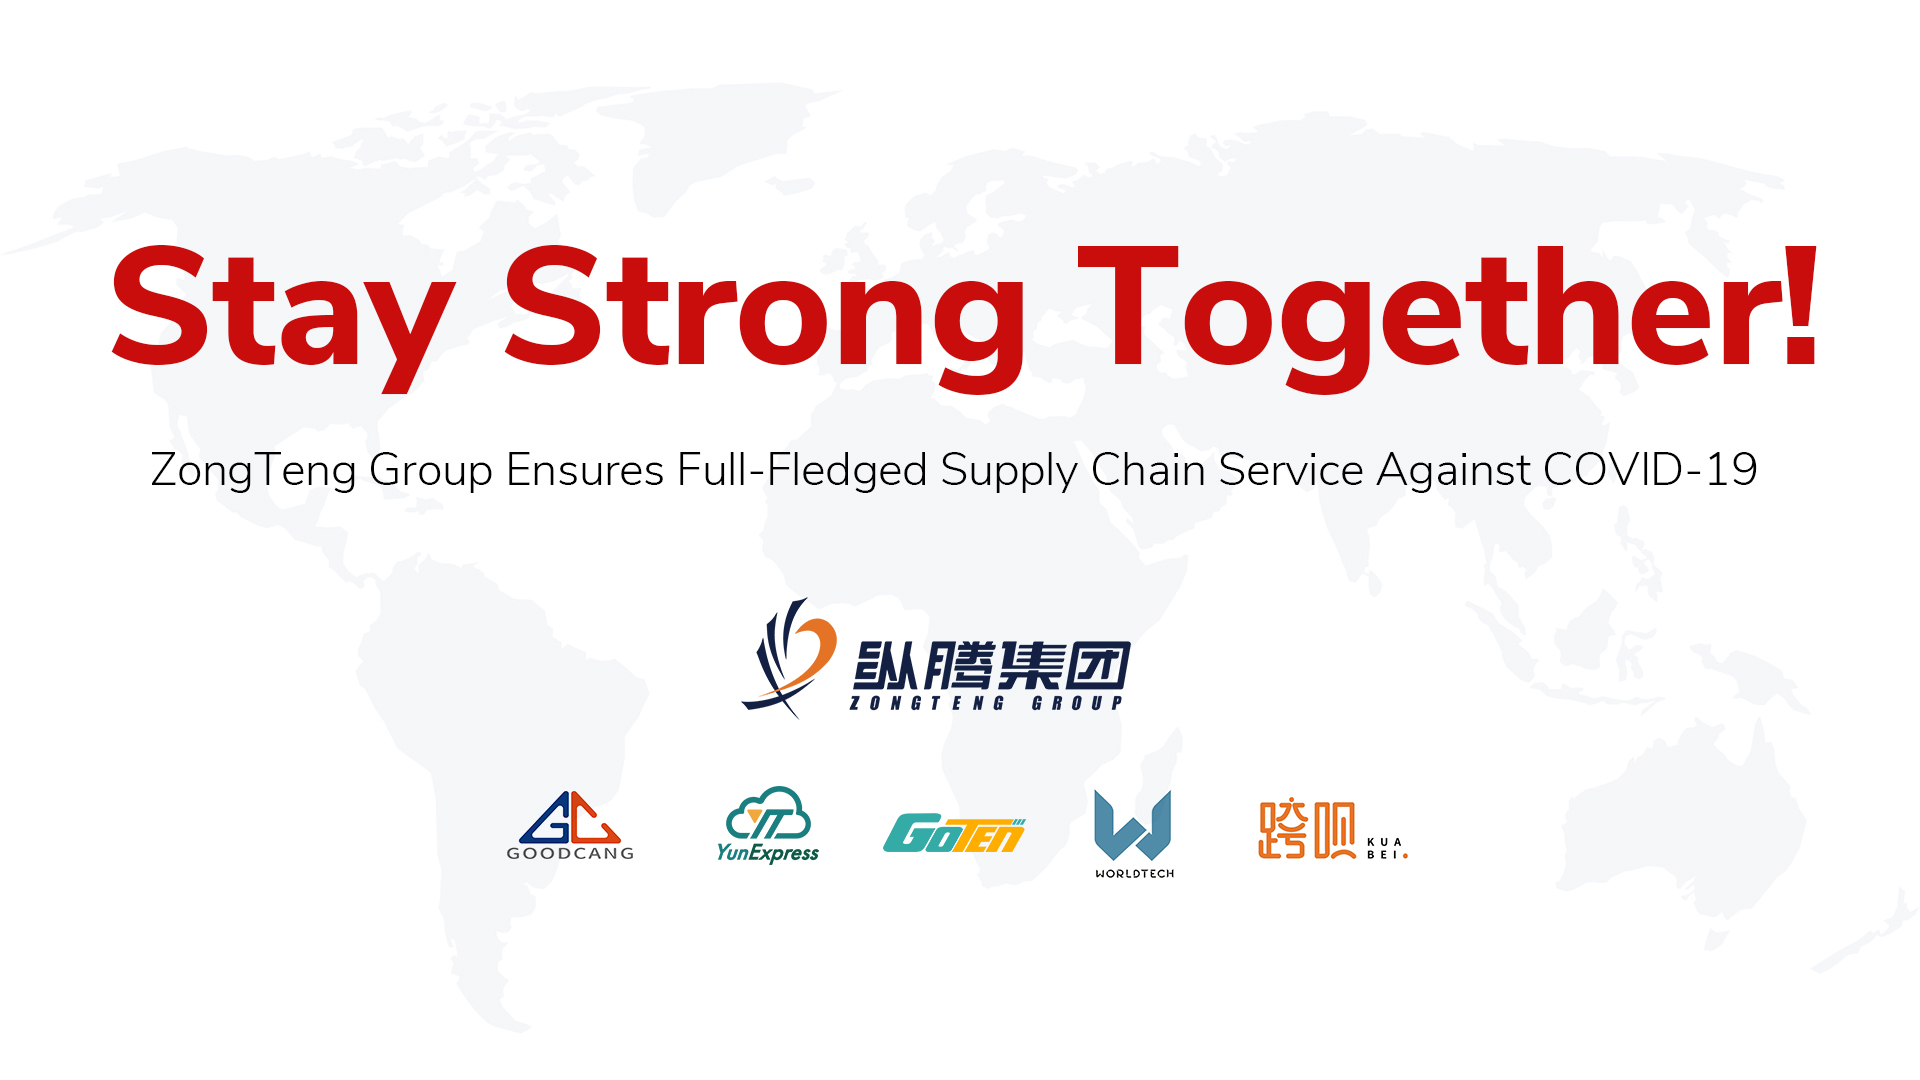 zongteng_group_let's_stay_strong_together